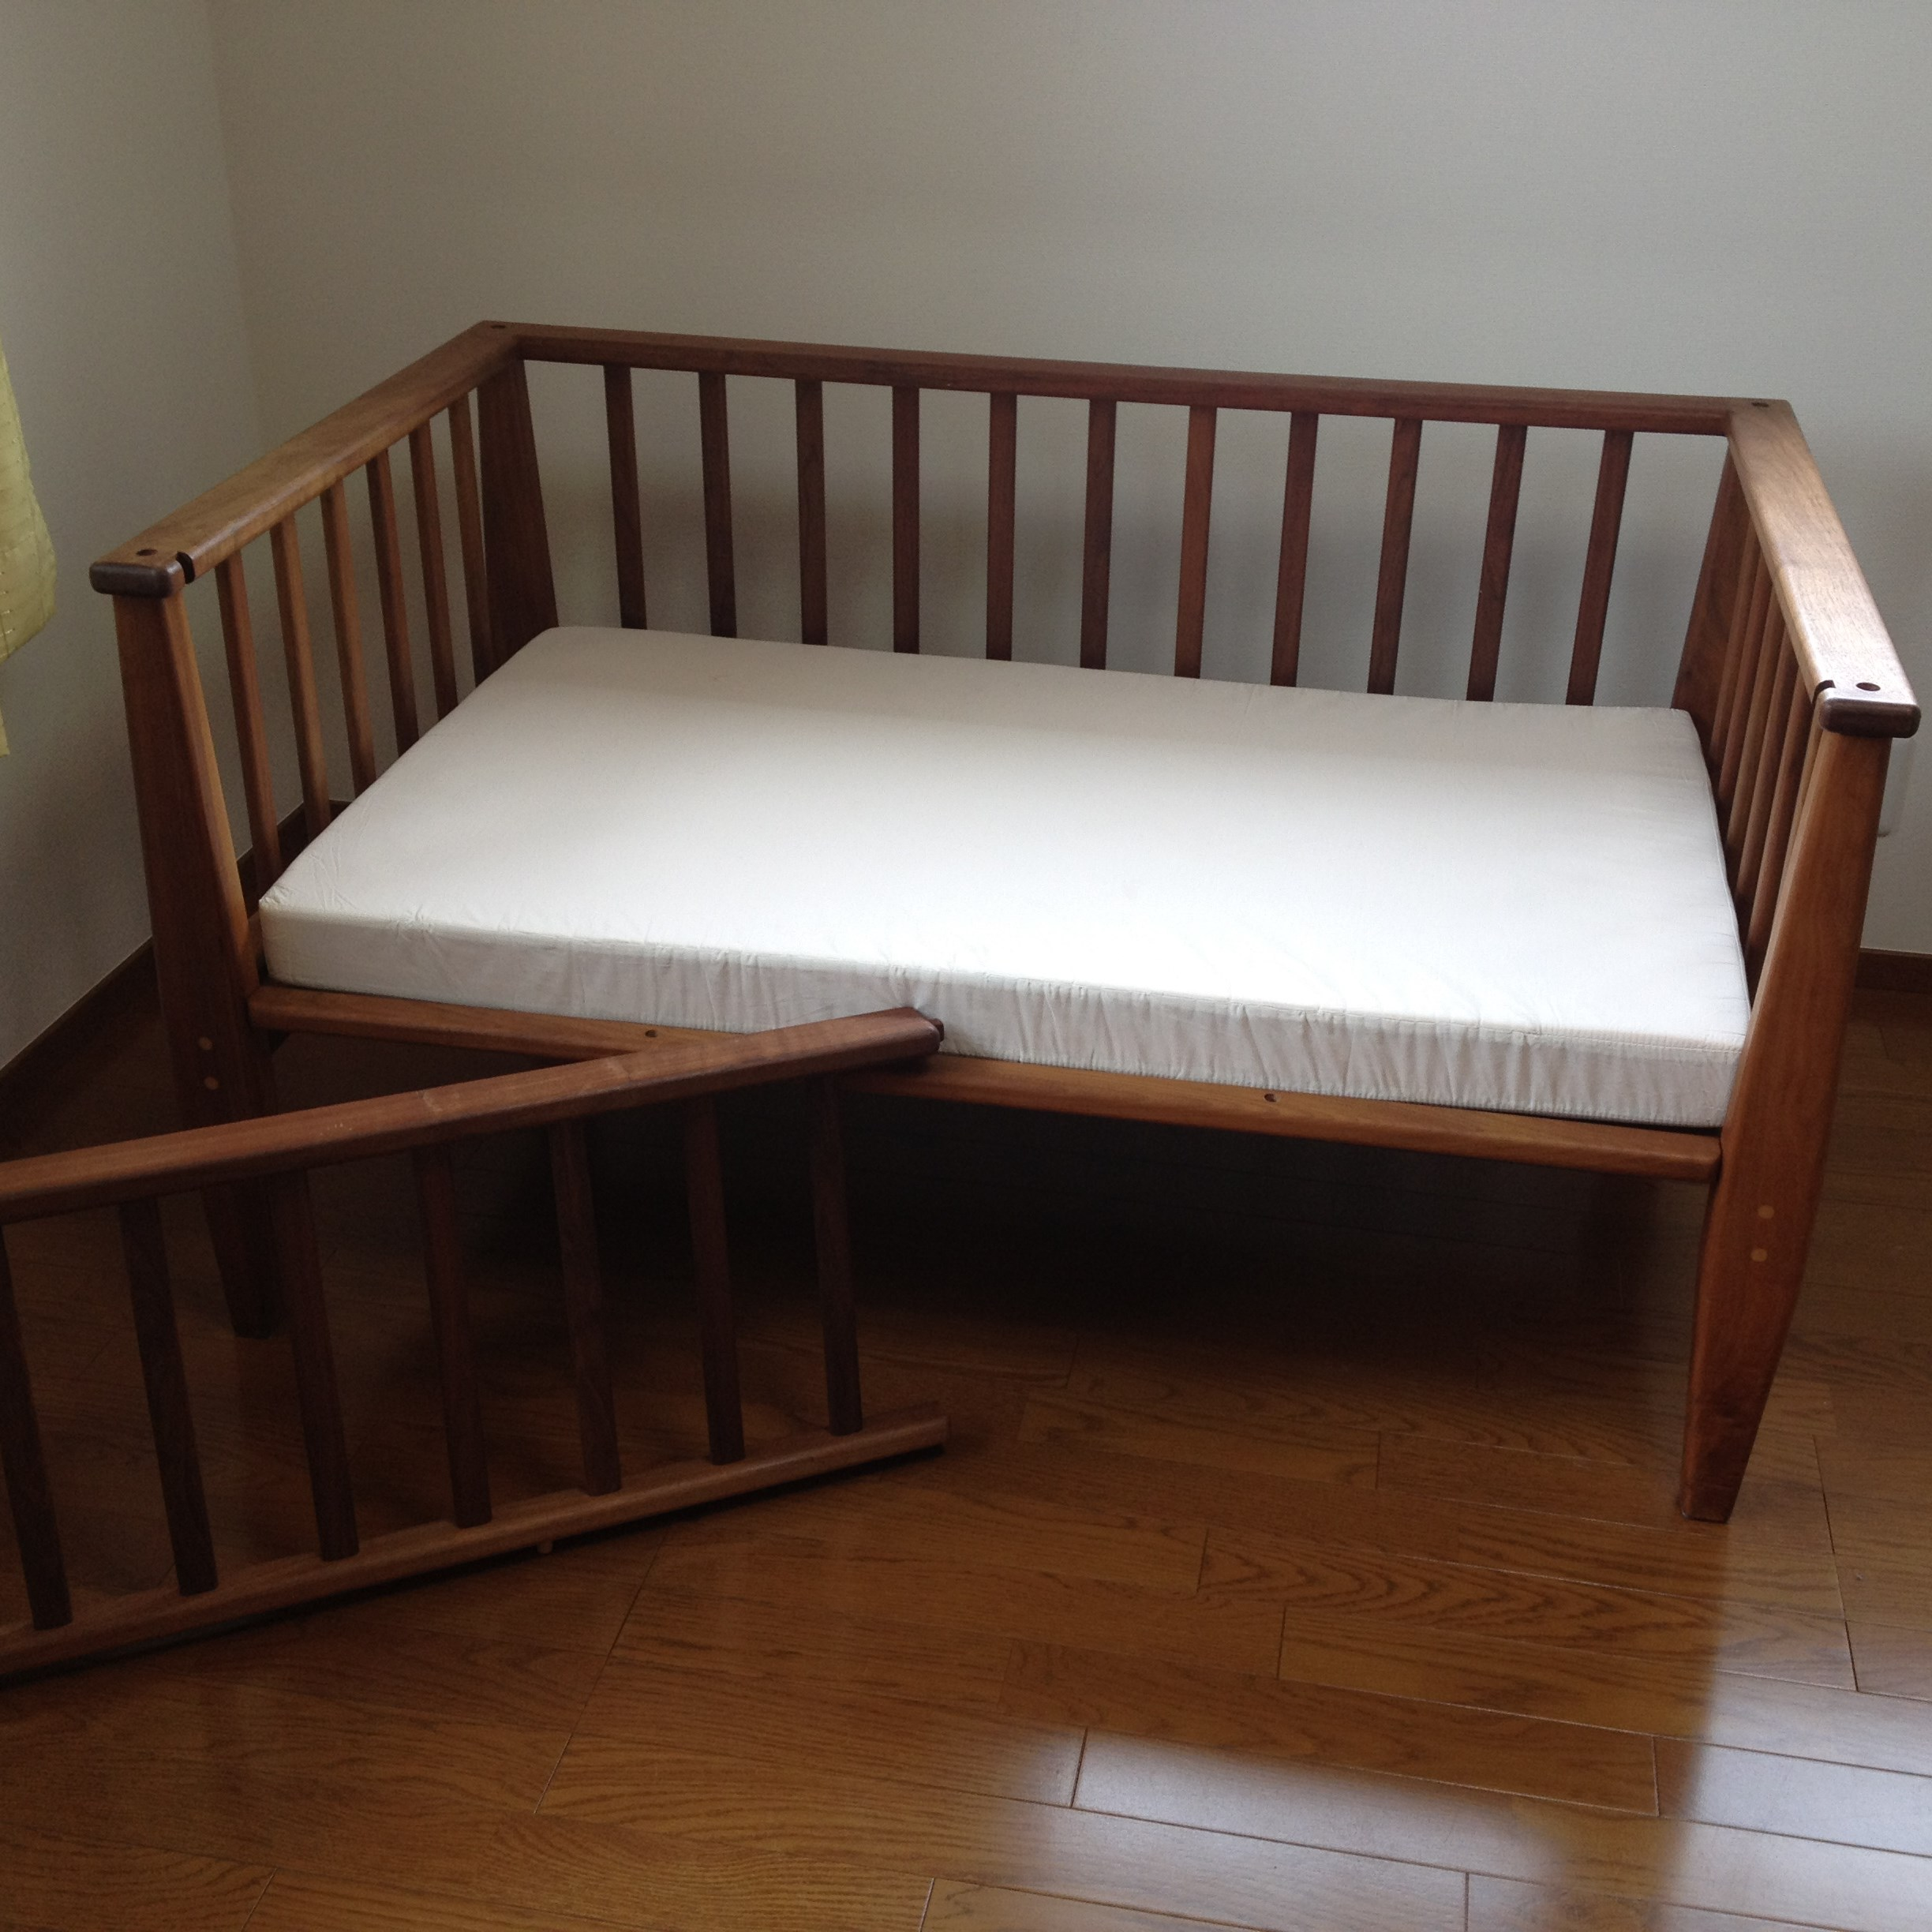 BABY BED - DINING TABLE / wedge